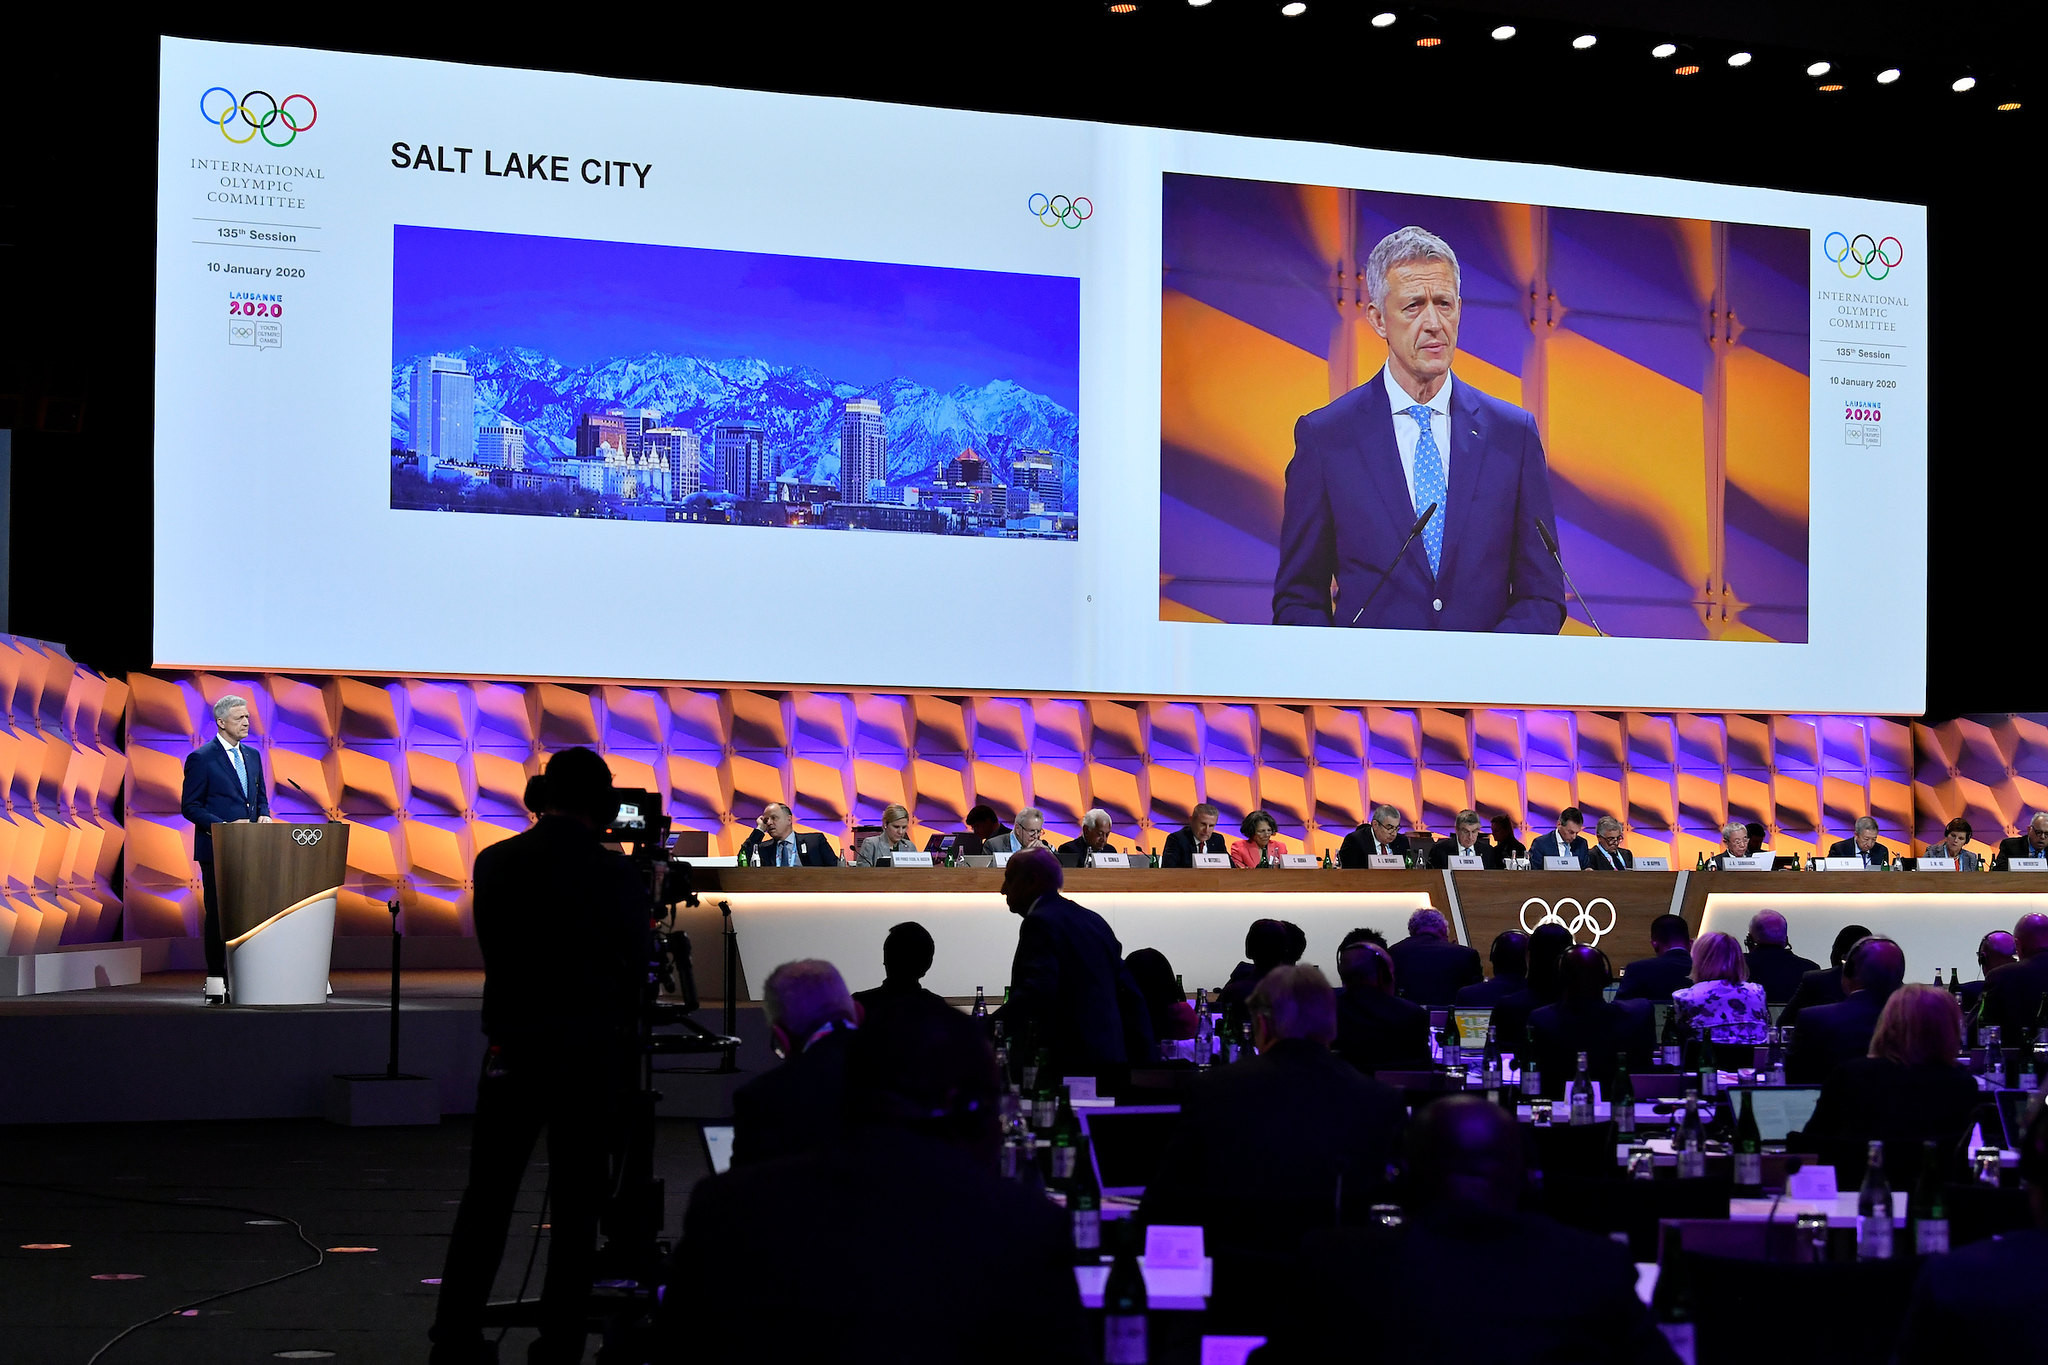 IOC confirm three cities interested in hosting future Winter Olympic Games